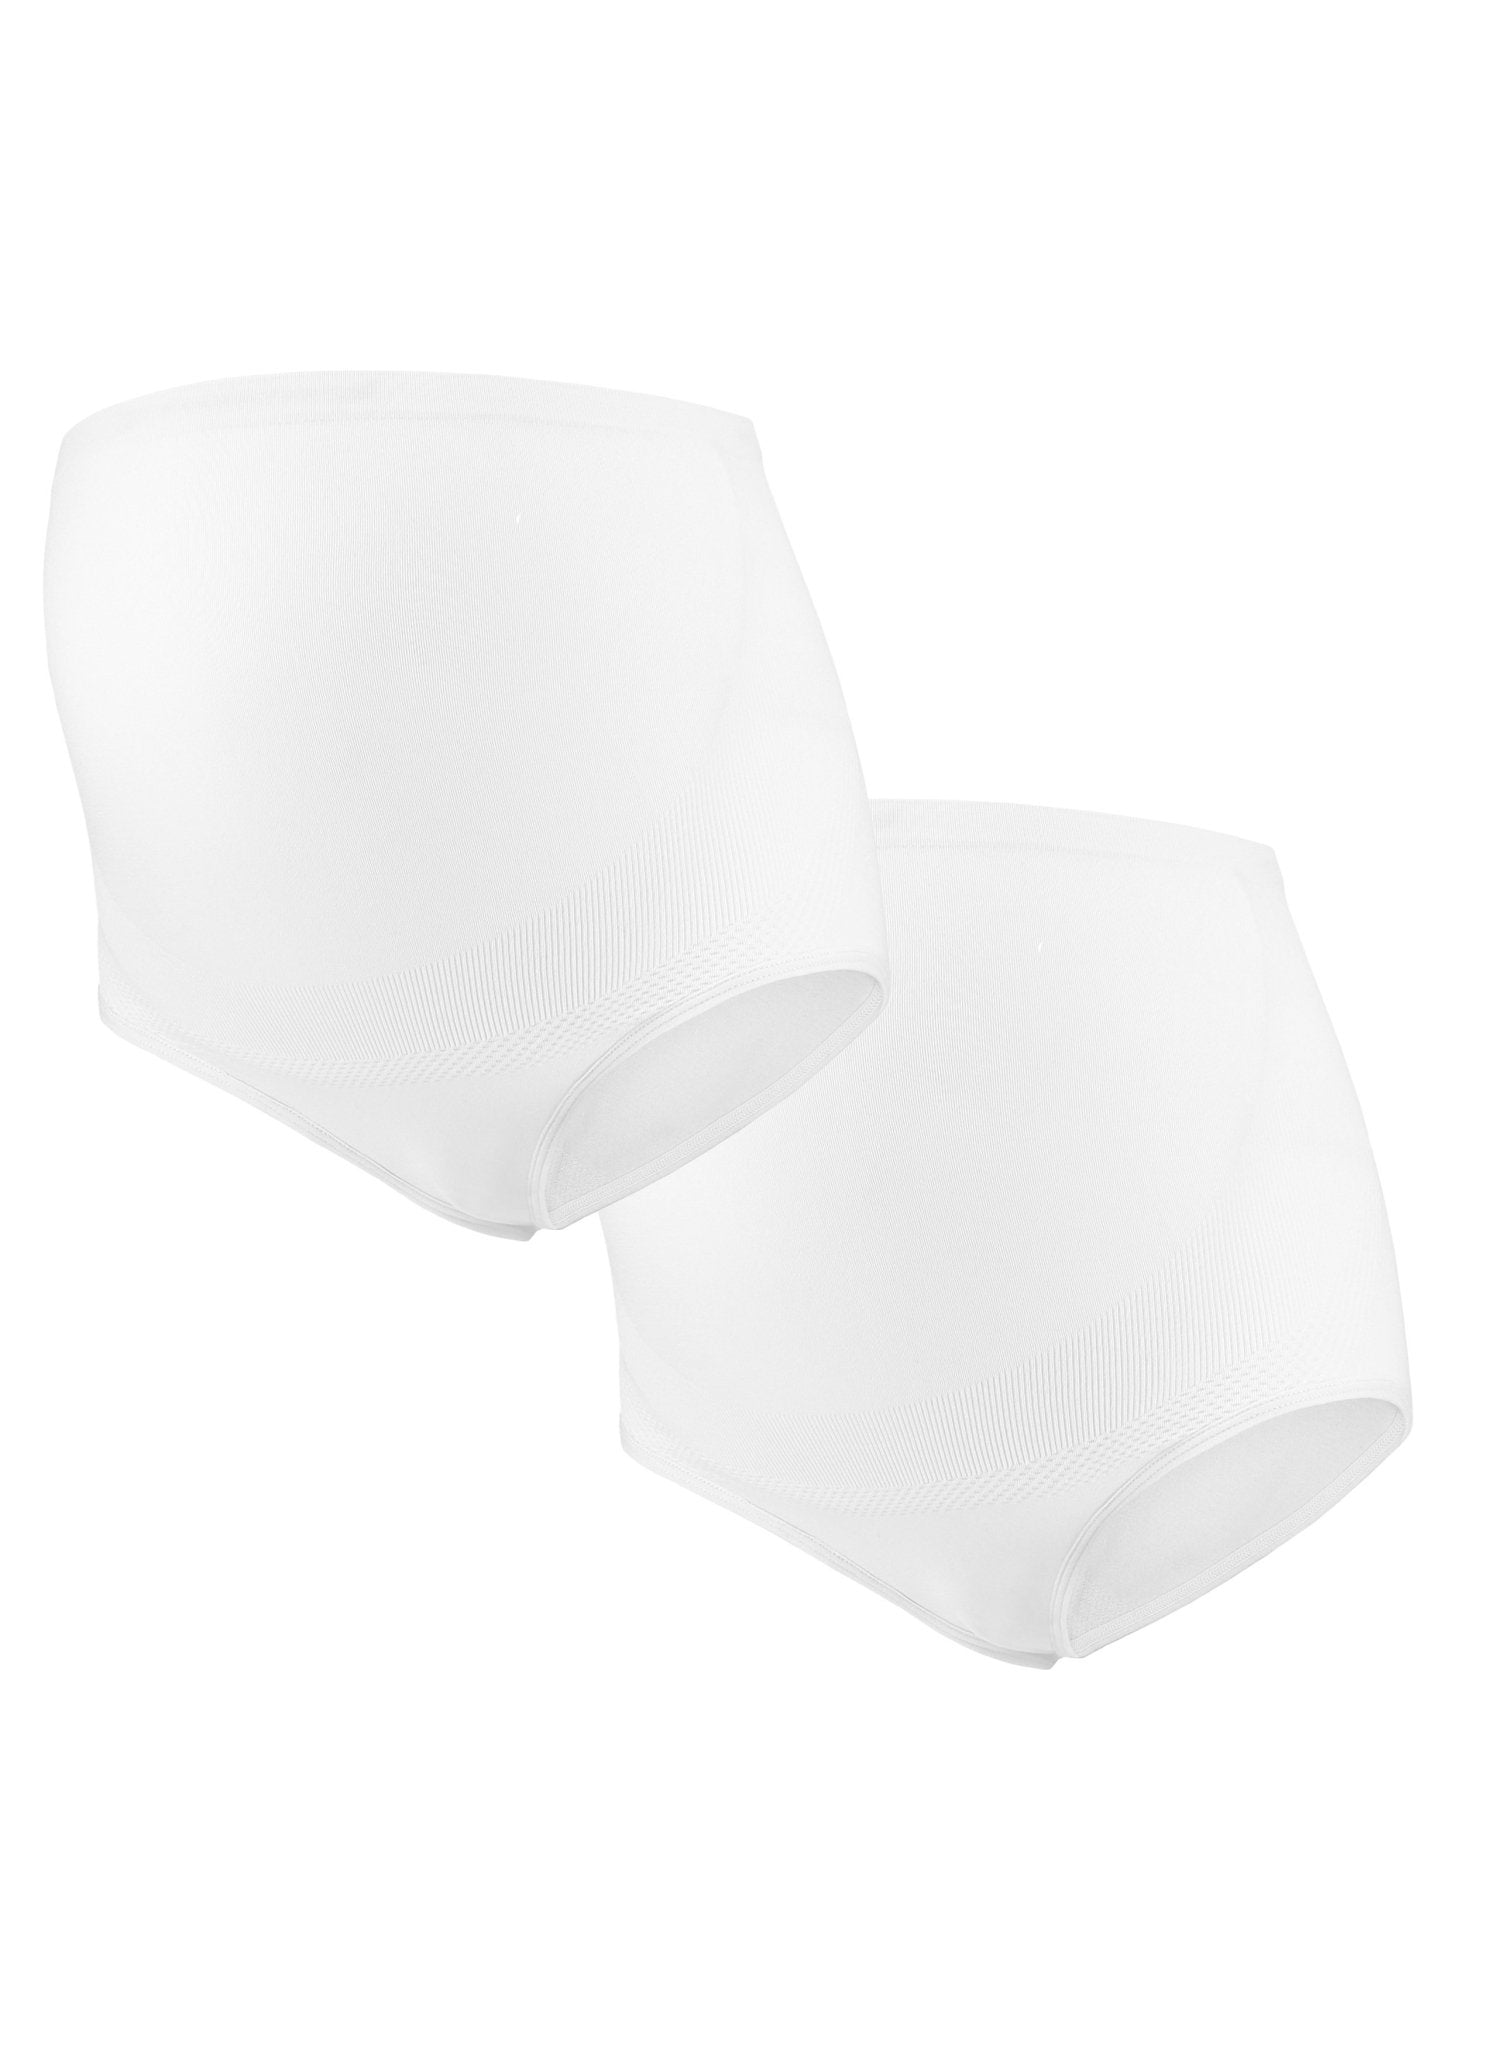 Maternity Brief Combo (2PCs) - White - Mums and Bumps